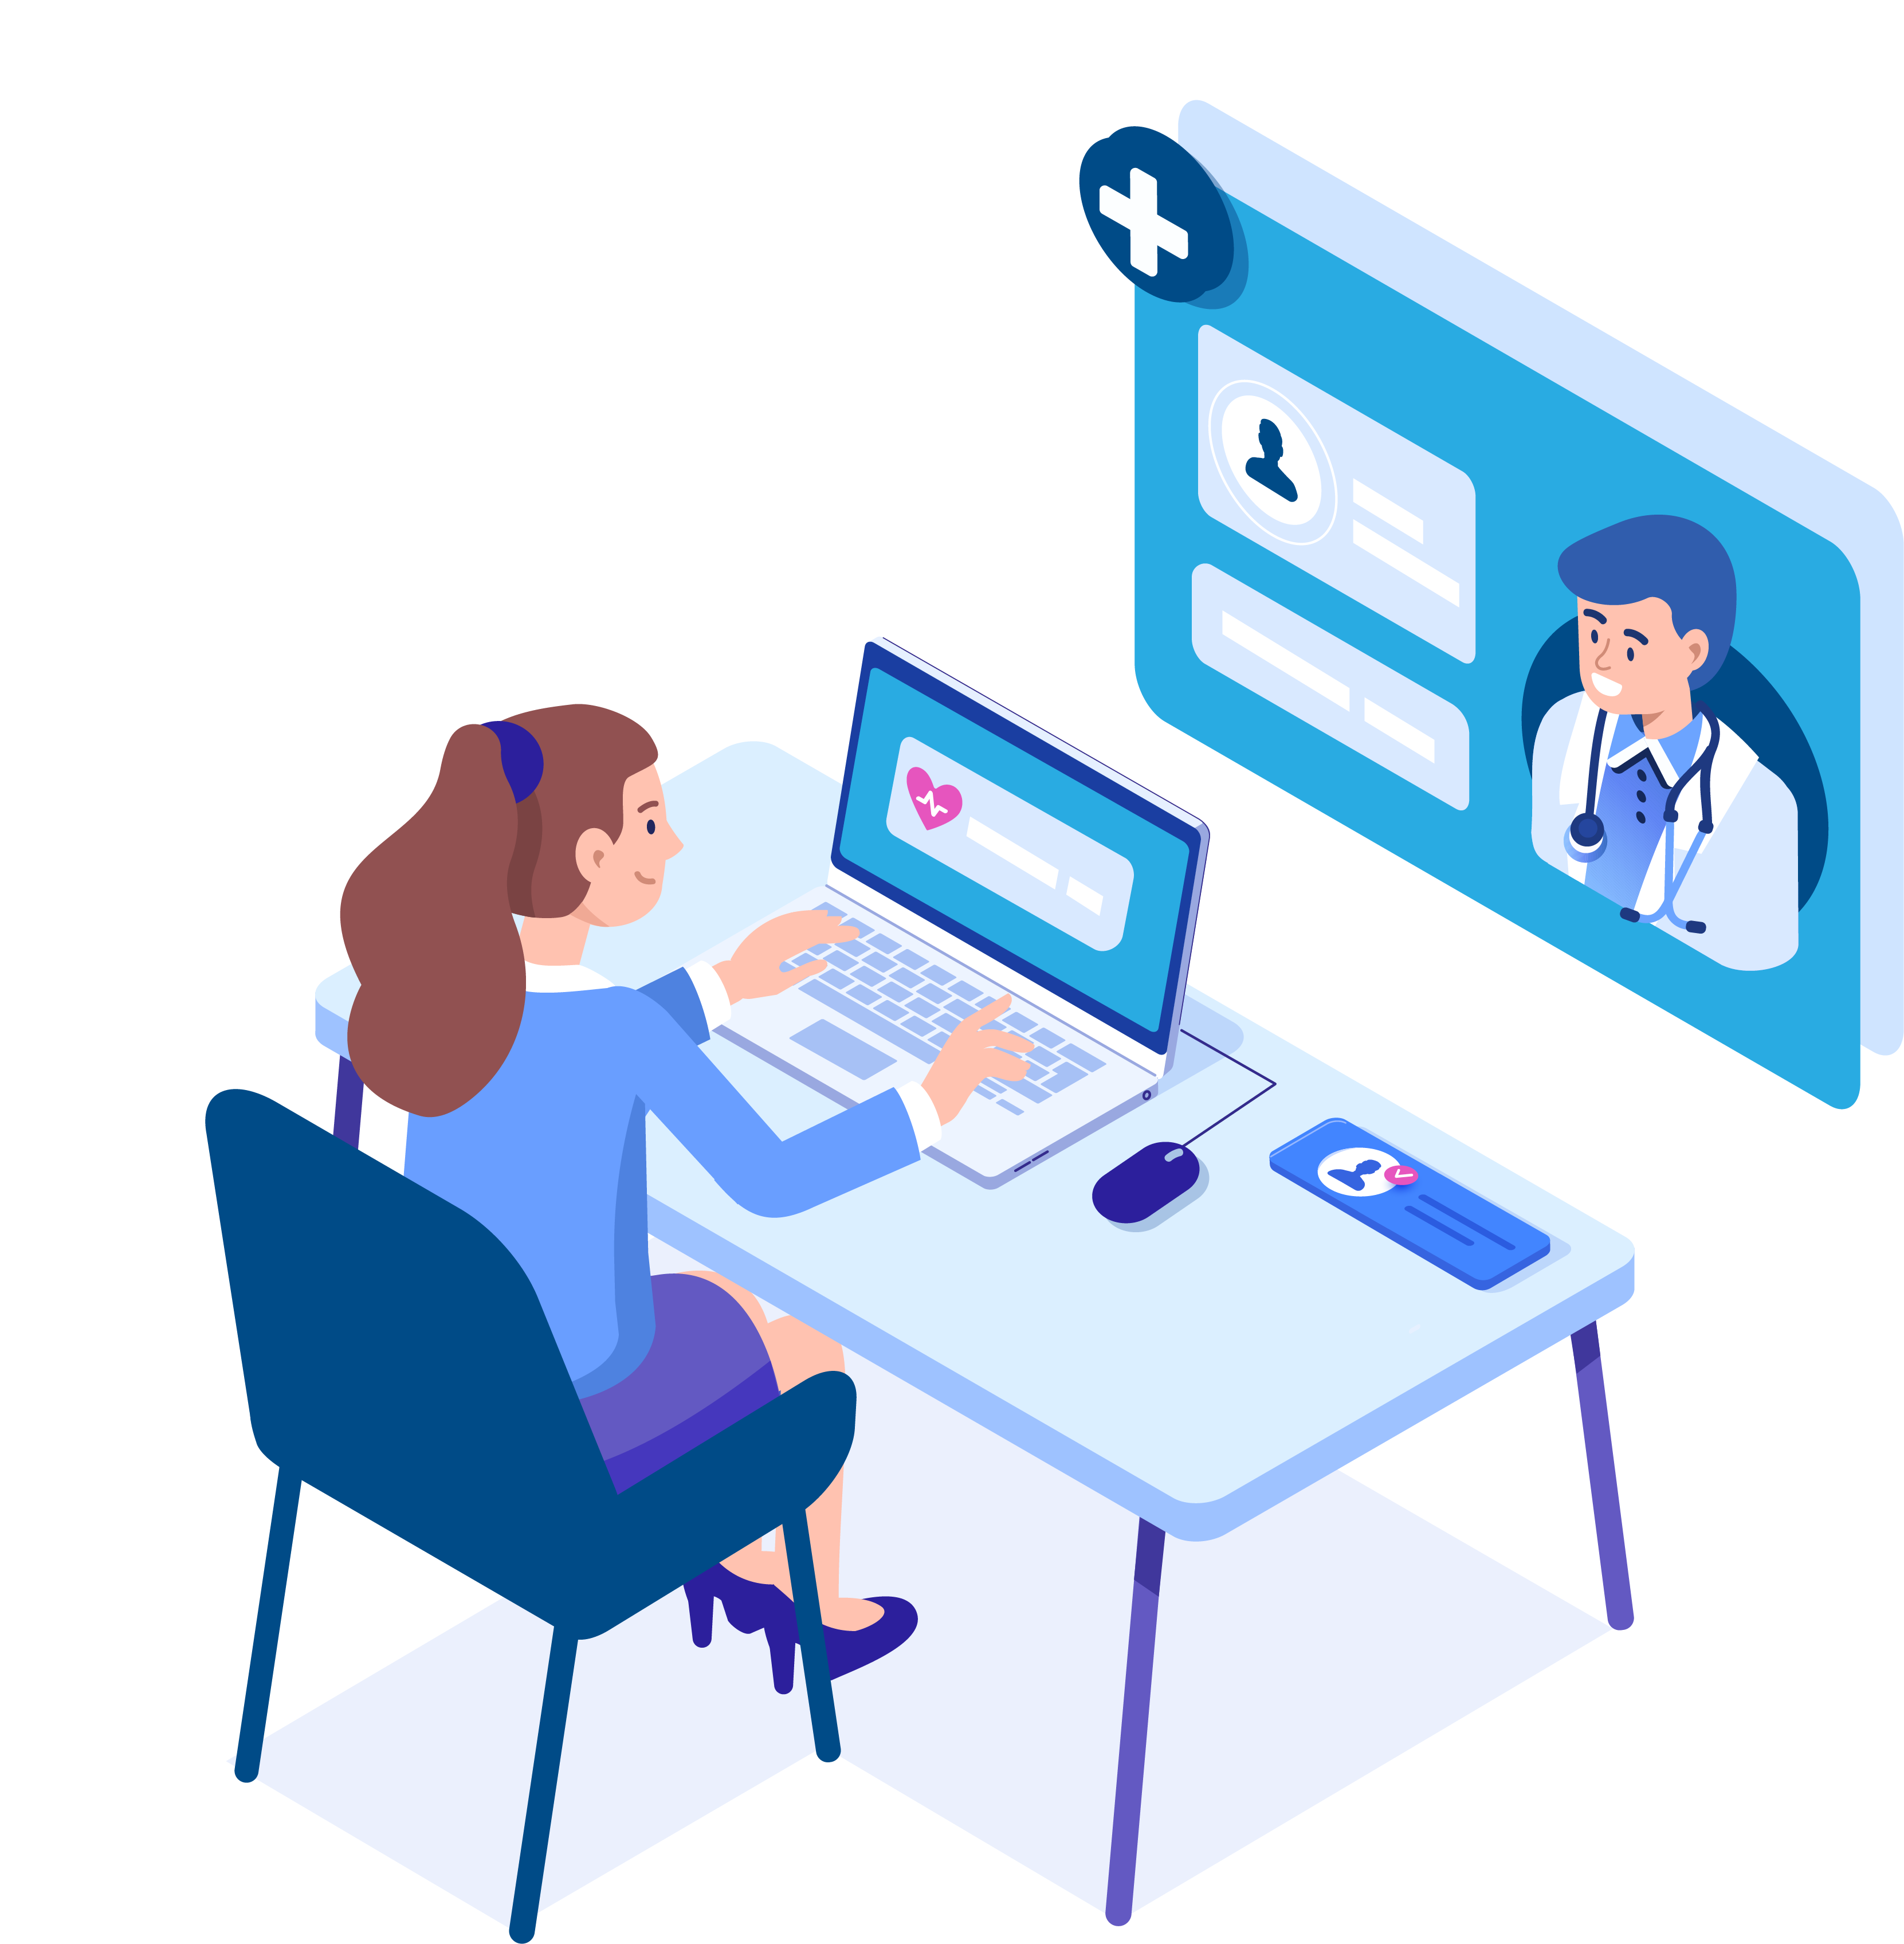 Patient on computer for telehealth